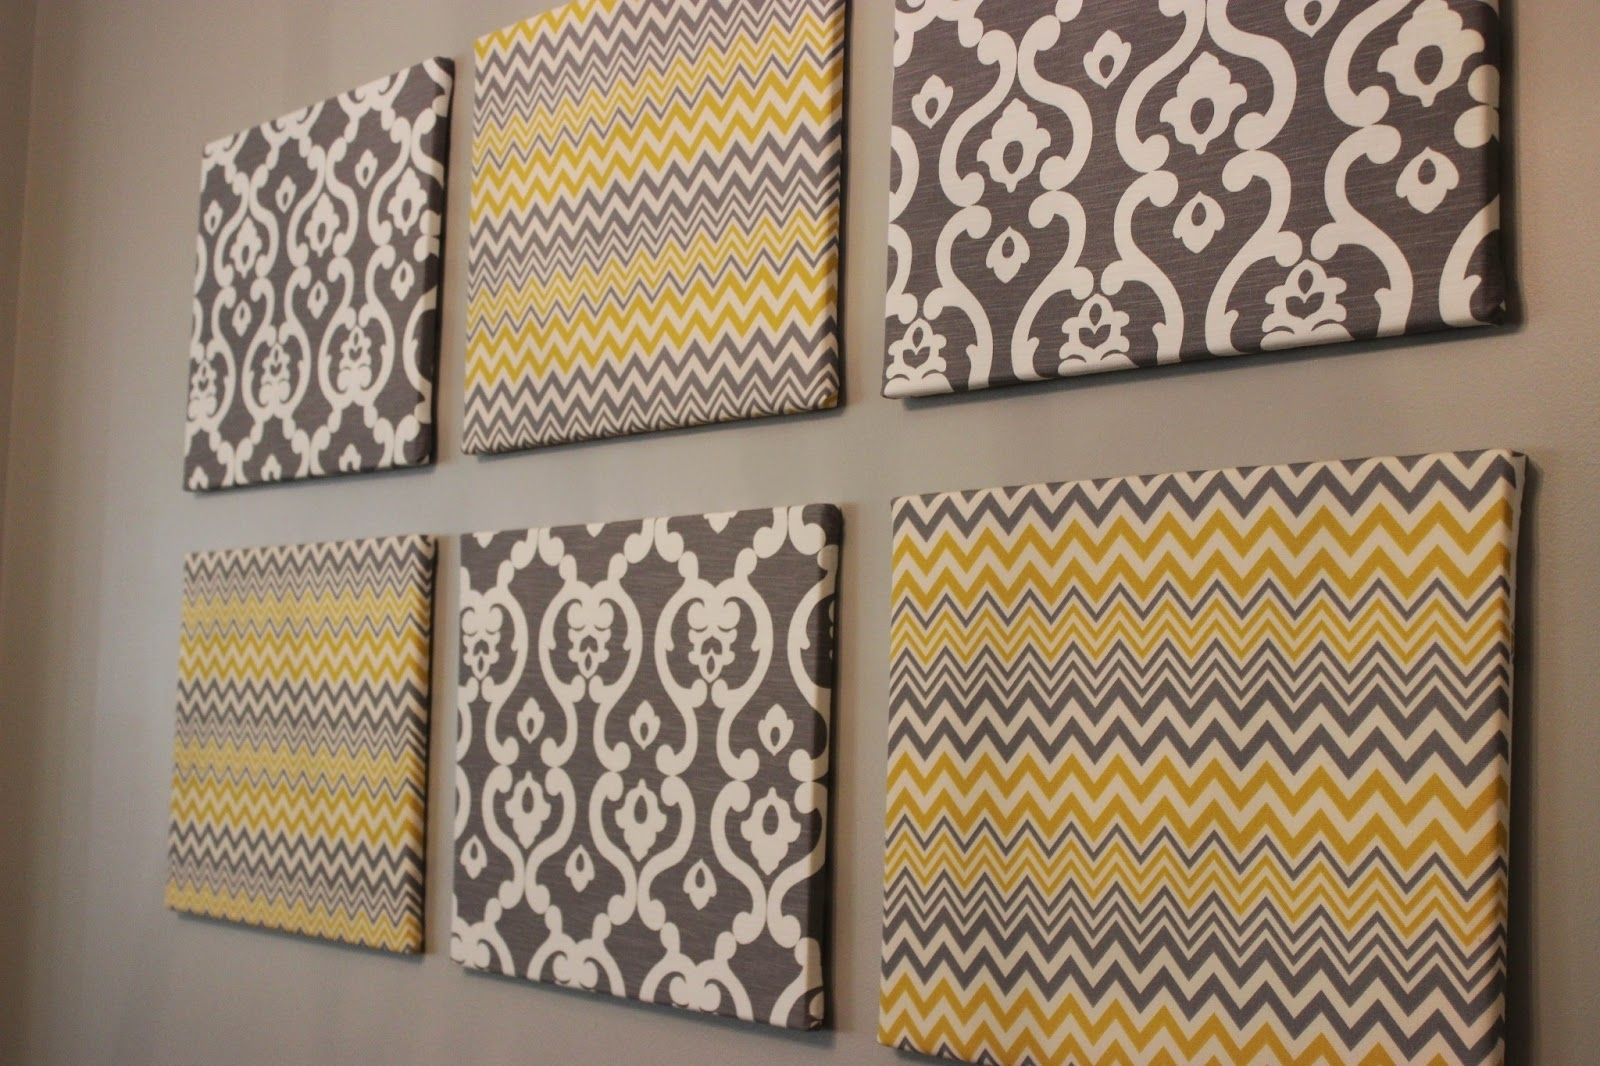 Sleek Diy Wall Conquers Painted Canvas A Pop Plus Home Decorating Pertaining To Most Recently Released Fabric Wall Art Canvas (View 9 of 15)